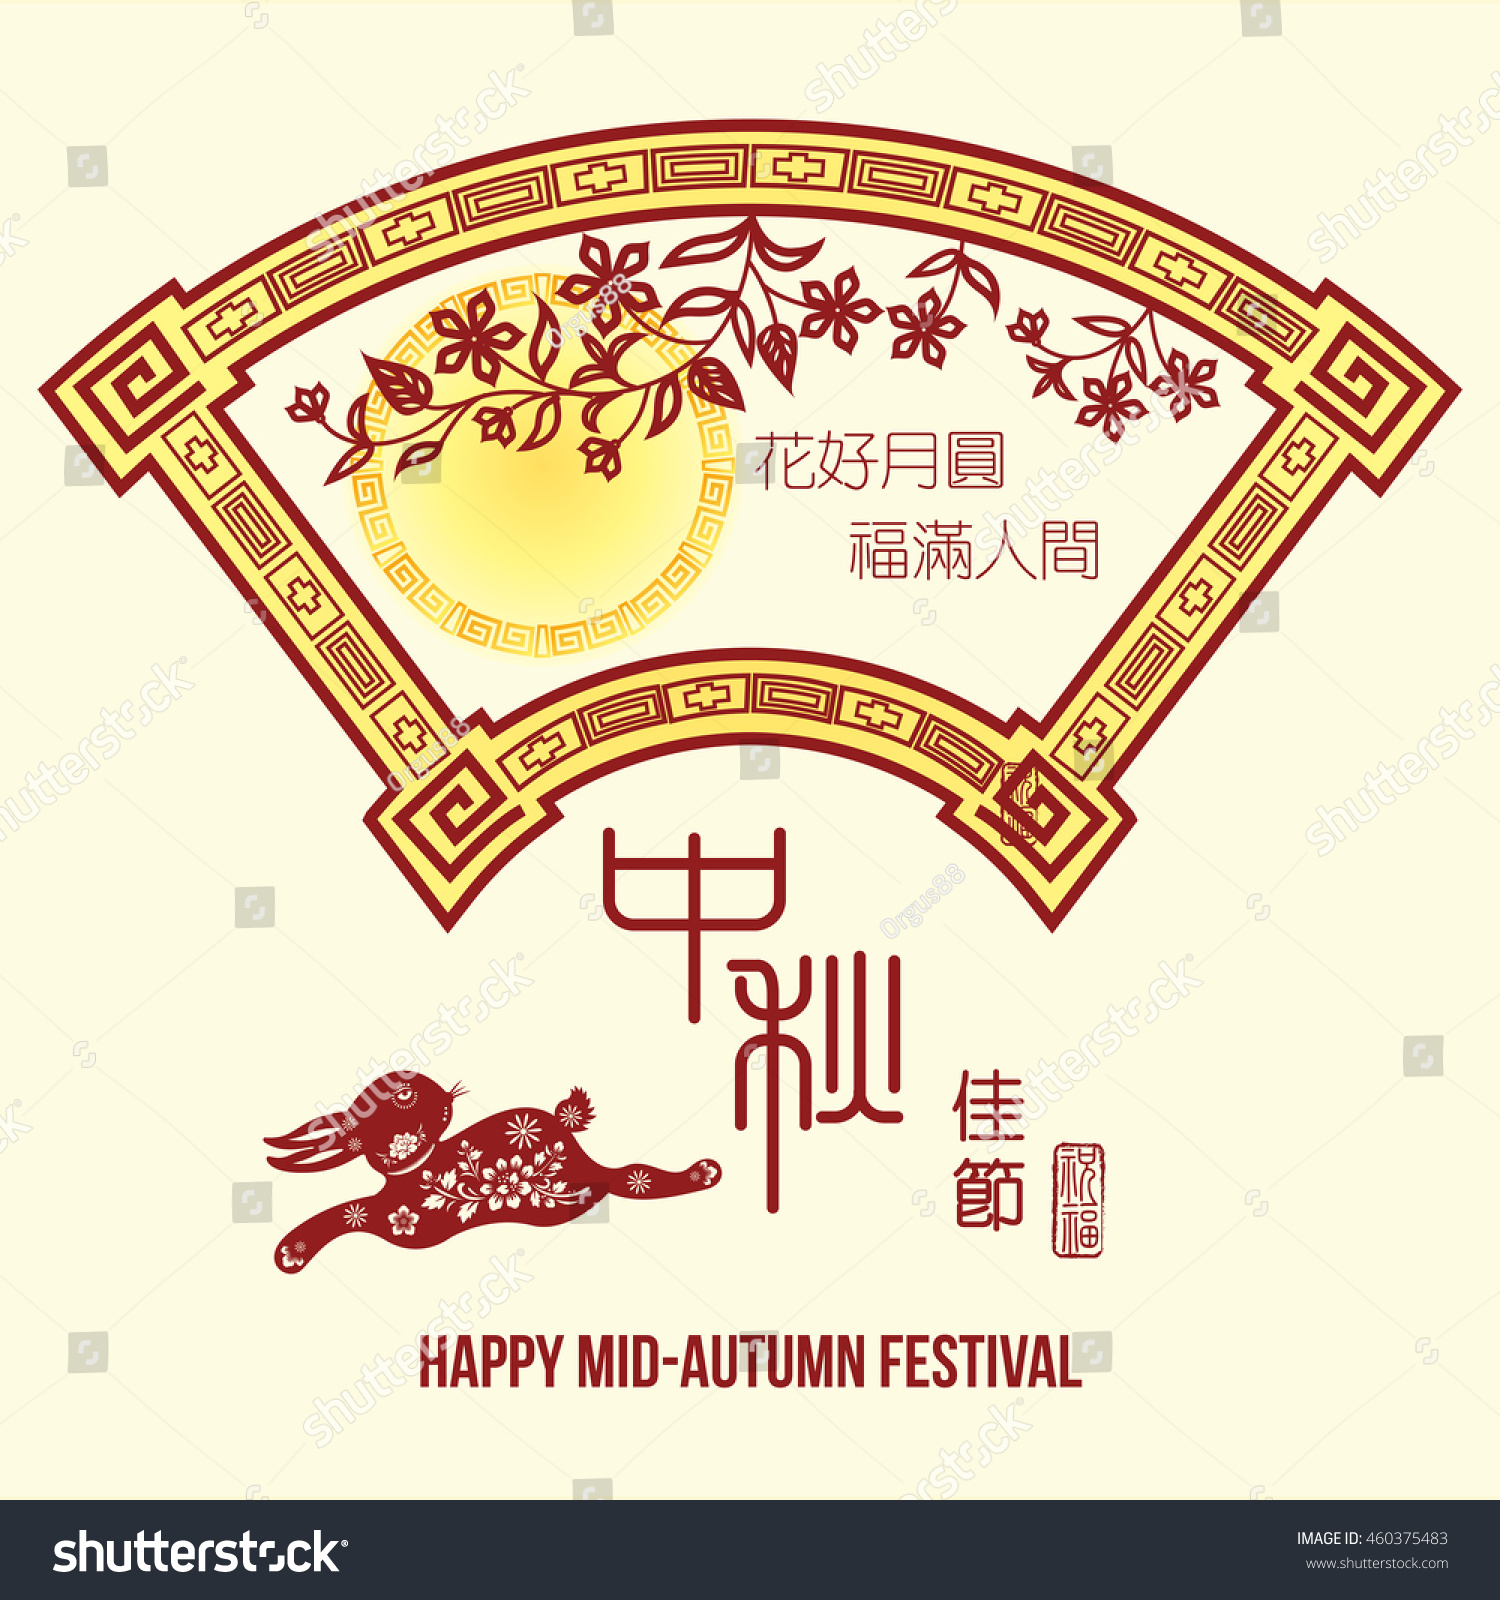 Chinese mid autumn festival graphic design stock vector 460375483 chinese mid autumn festival graphic design chinese character zhong qiu mid autumn buycottarizona Gallery